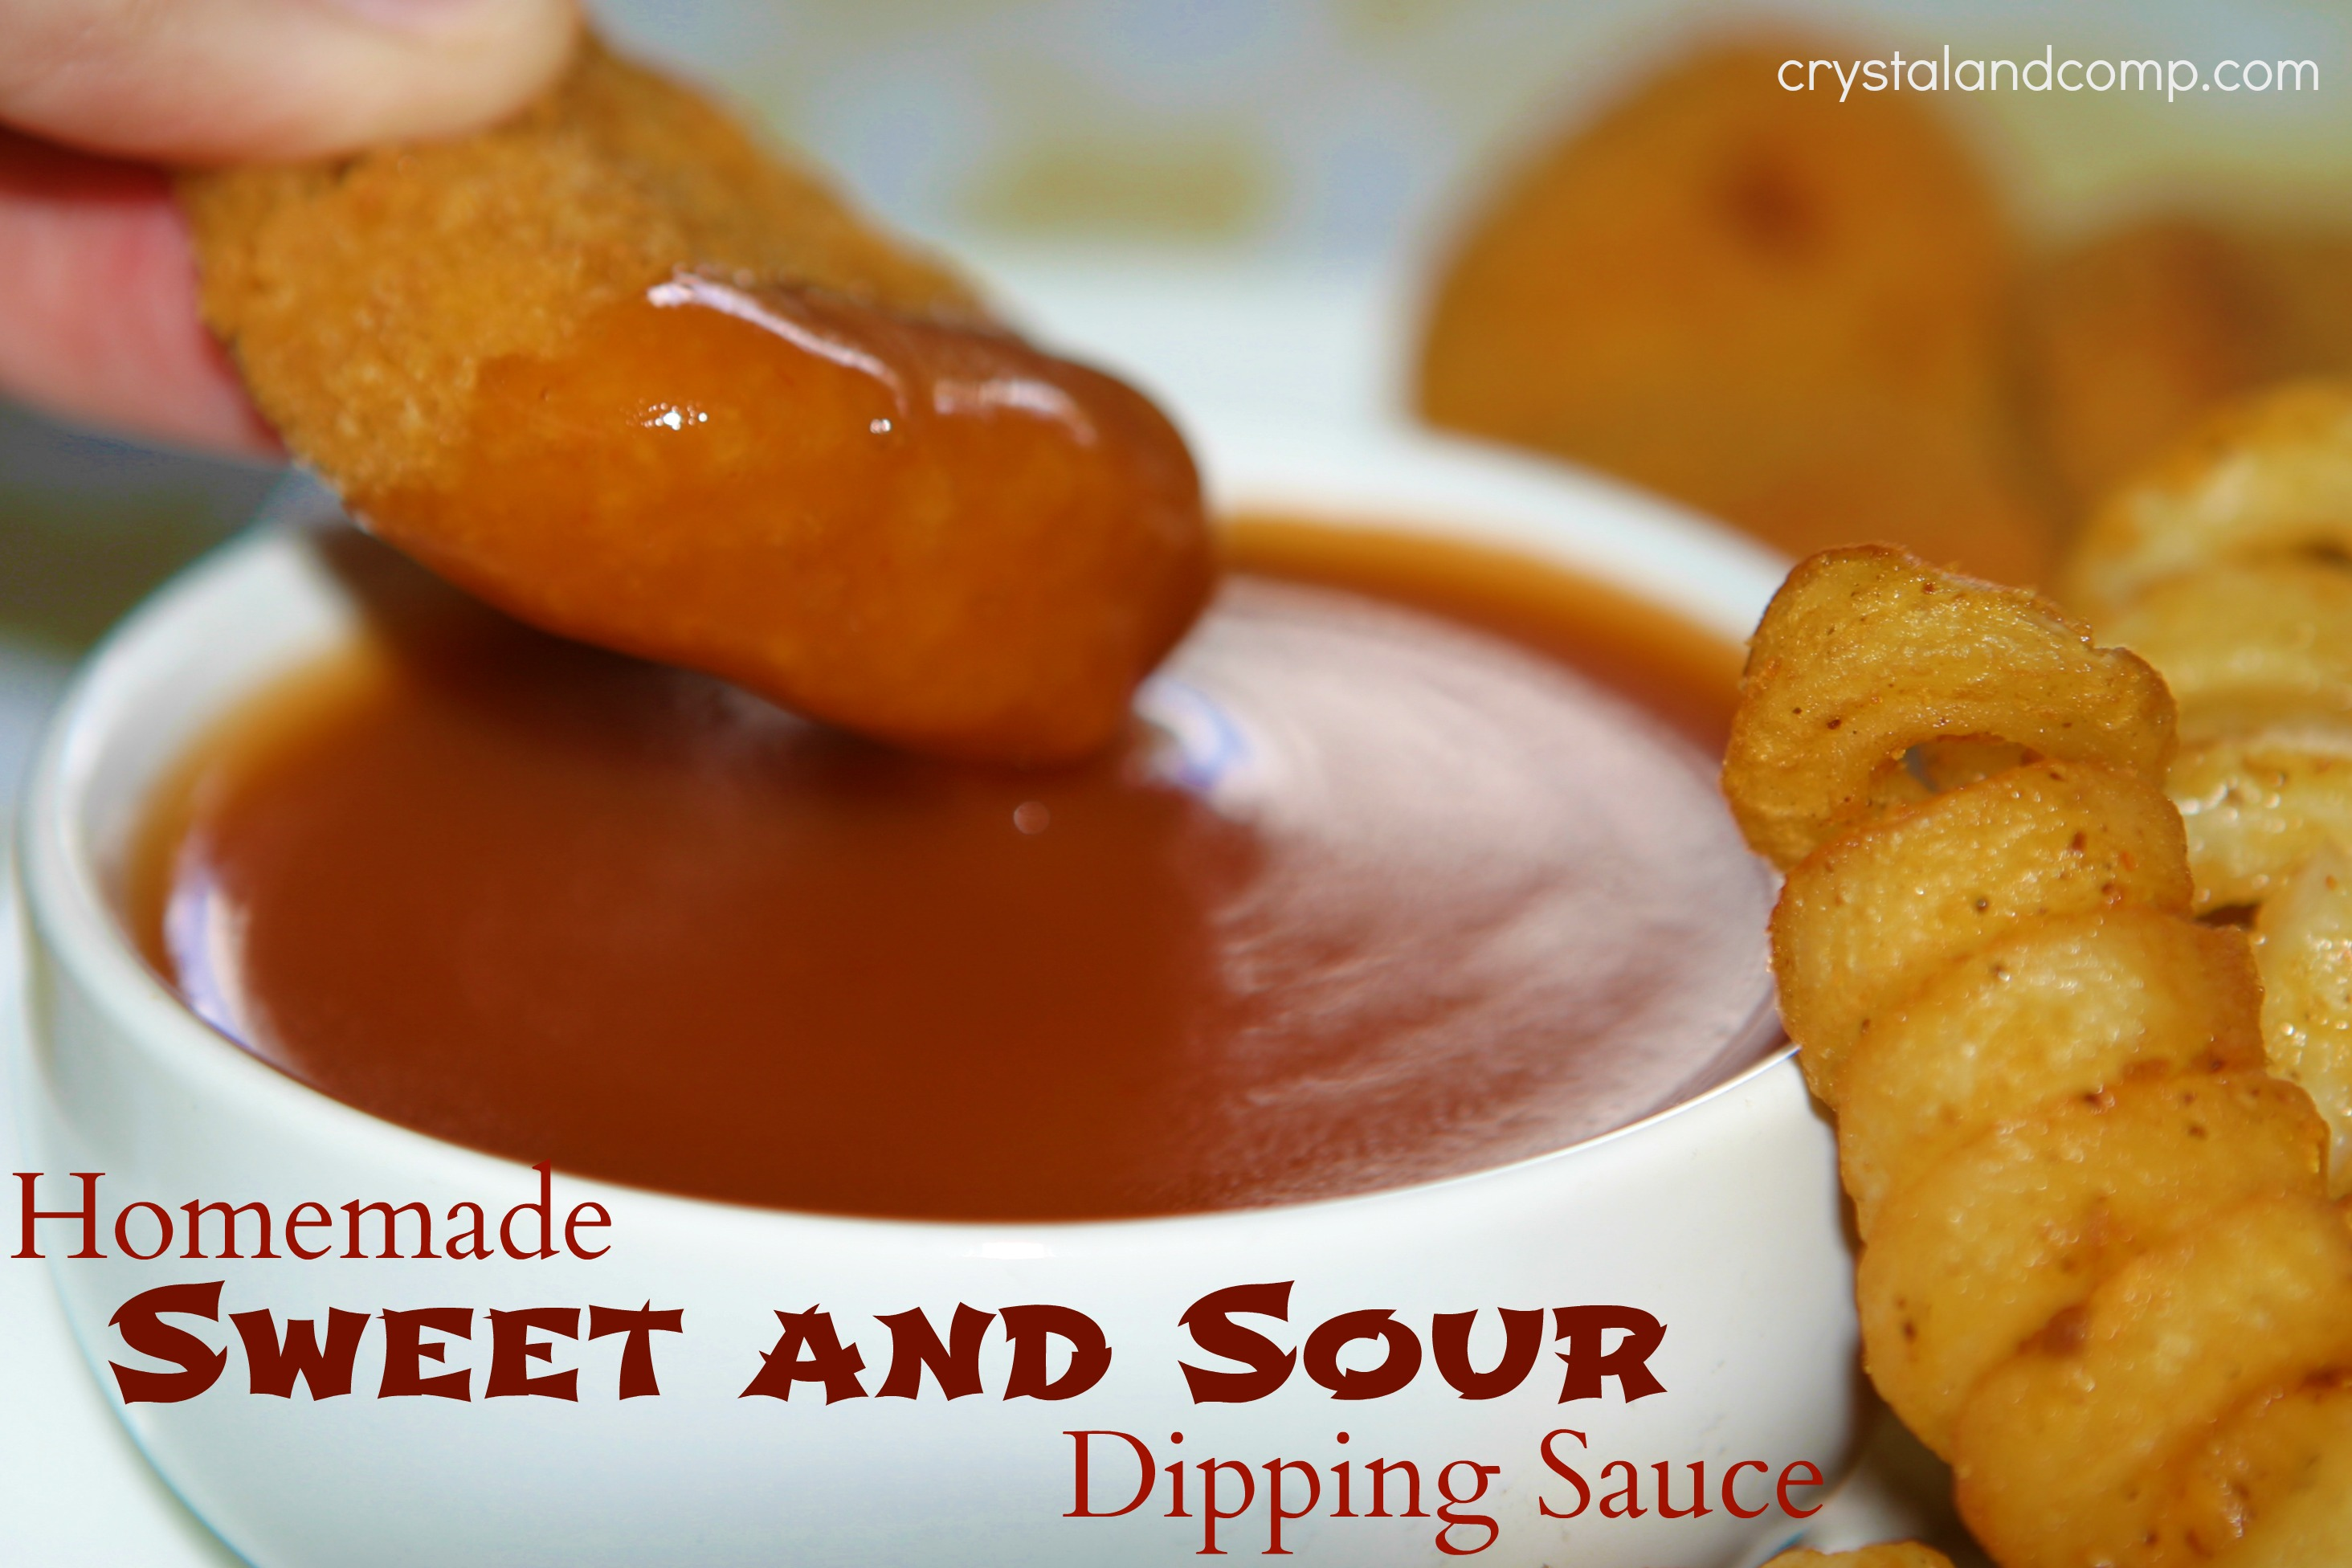 ... wondered how hard it would be to make my own sweet and sour sauce